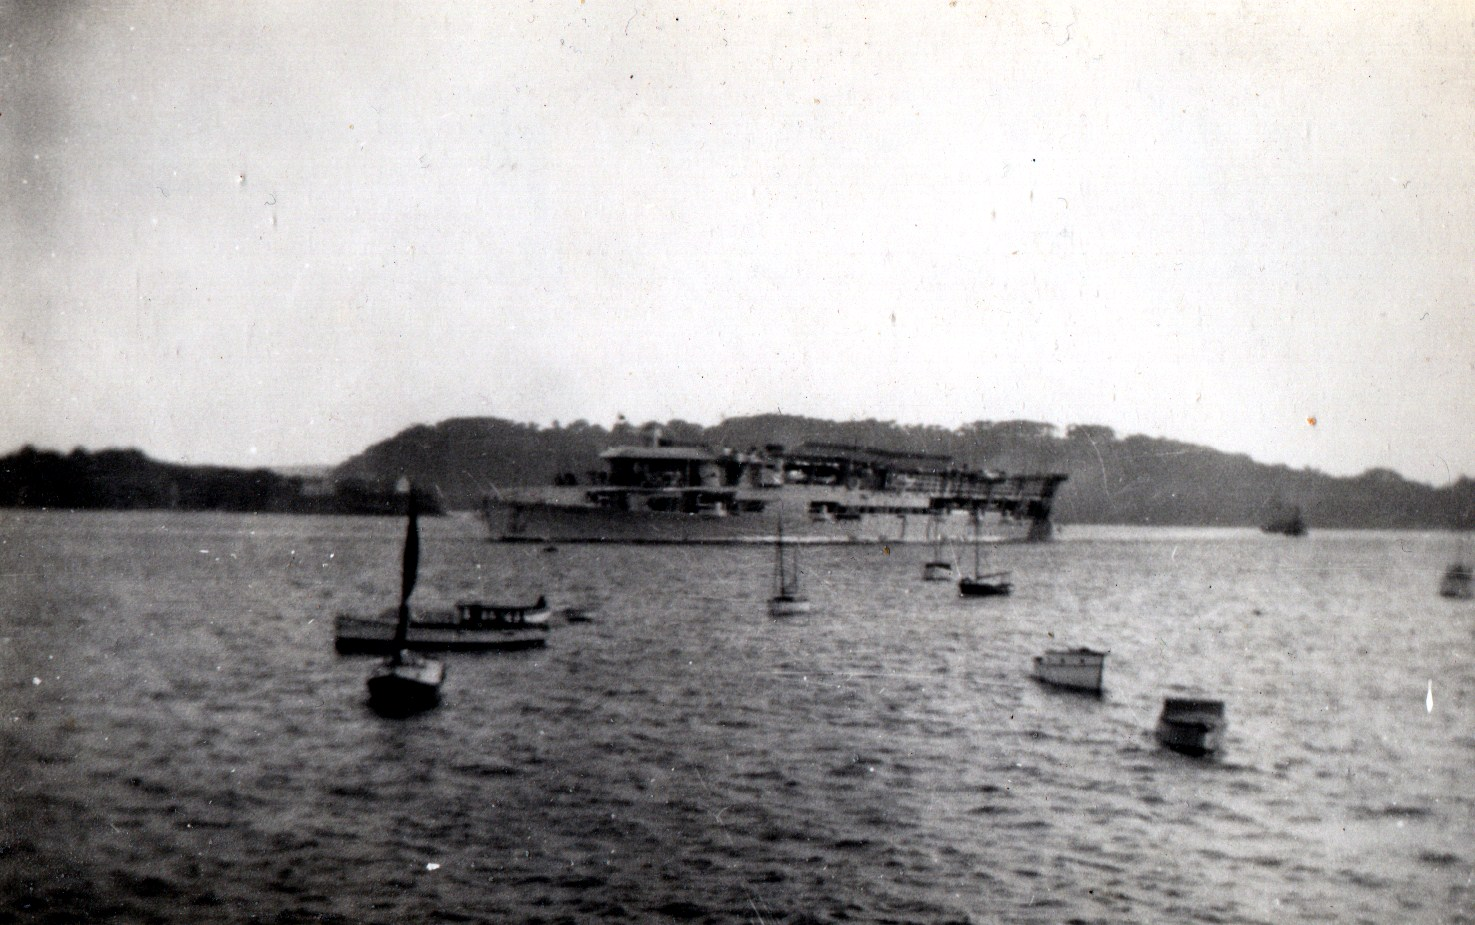 HMS Furious an early period aircraft carrier passing Drakes Island, Plymouth in 1934